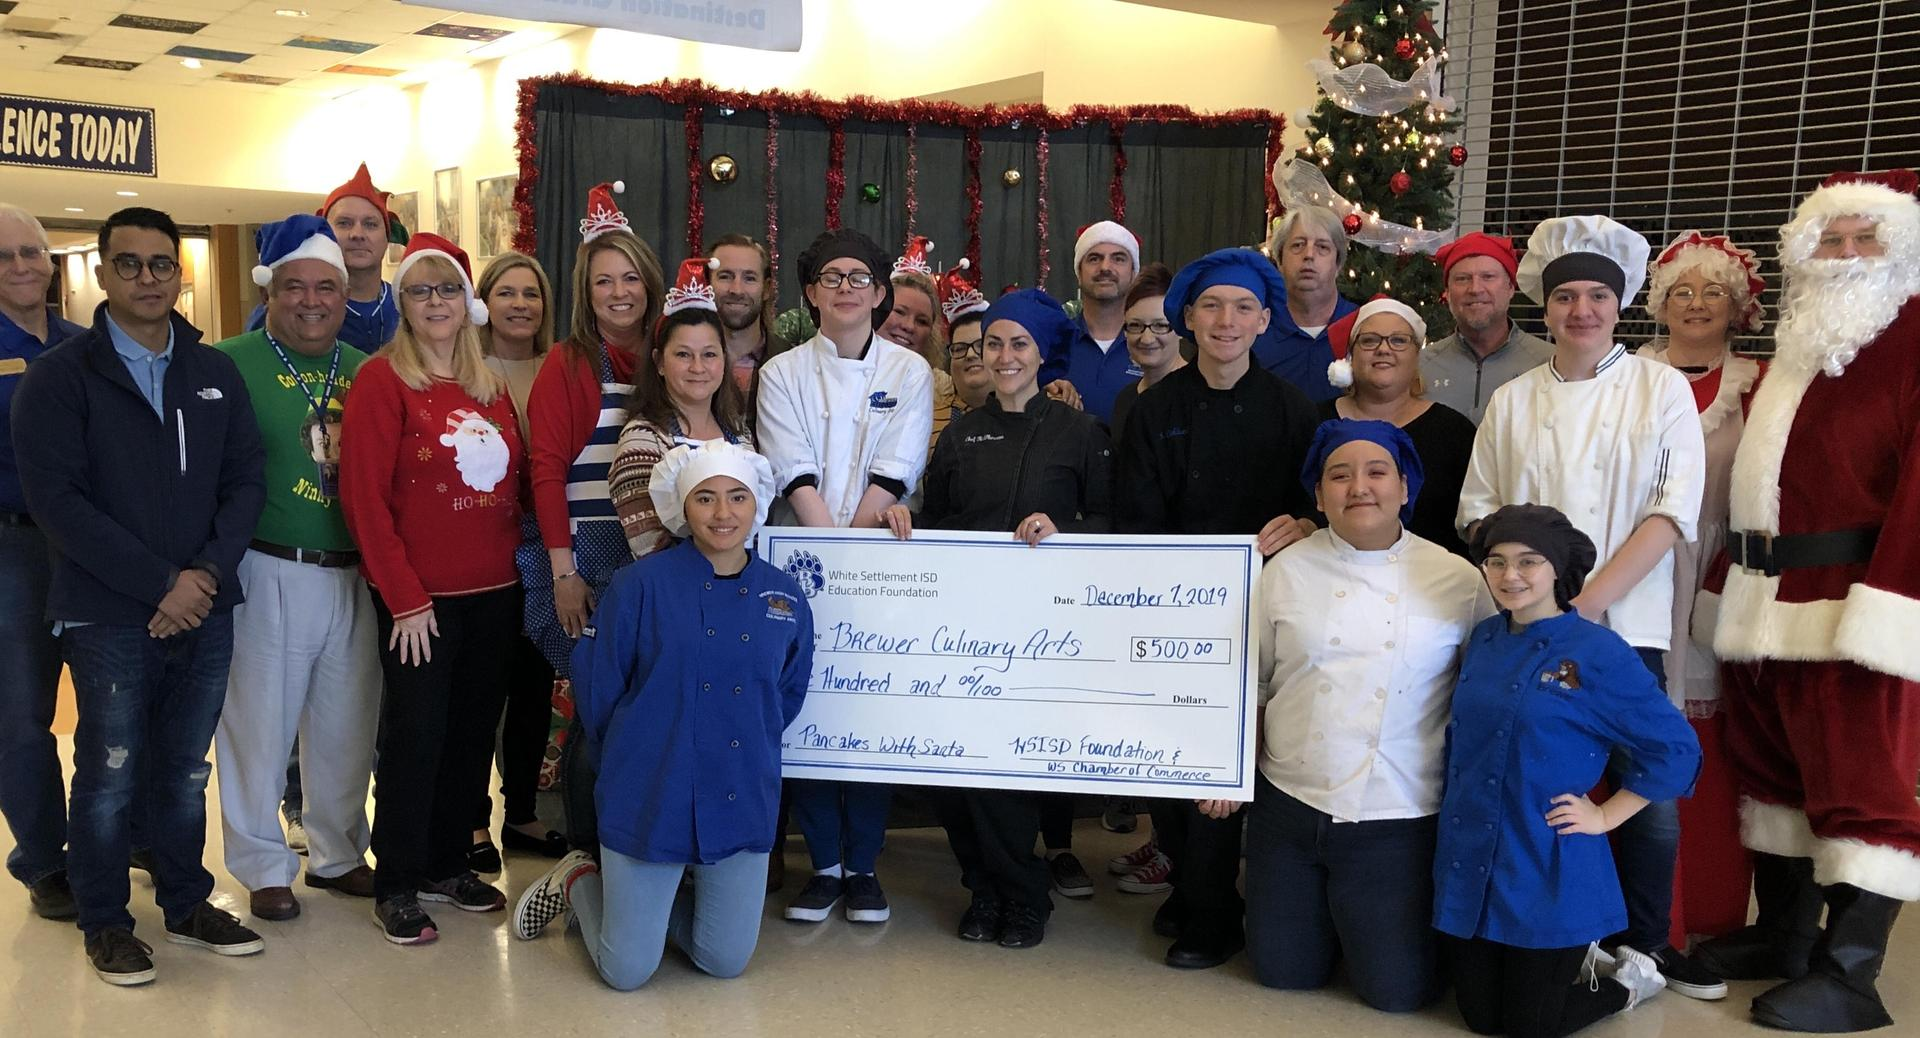 The WSISD Education Foundation and the White Settlement Chamber of Commerce sponsored the 4th annual Pancakes with Santa event on Dec. 7. The organizations awarded a portion of the proceeds ($500) to the Brewer High School Culinary Arts program, which fed 600 people a pancake breakfast.